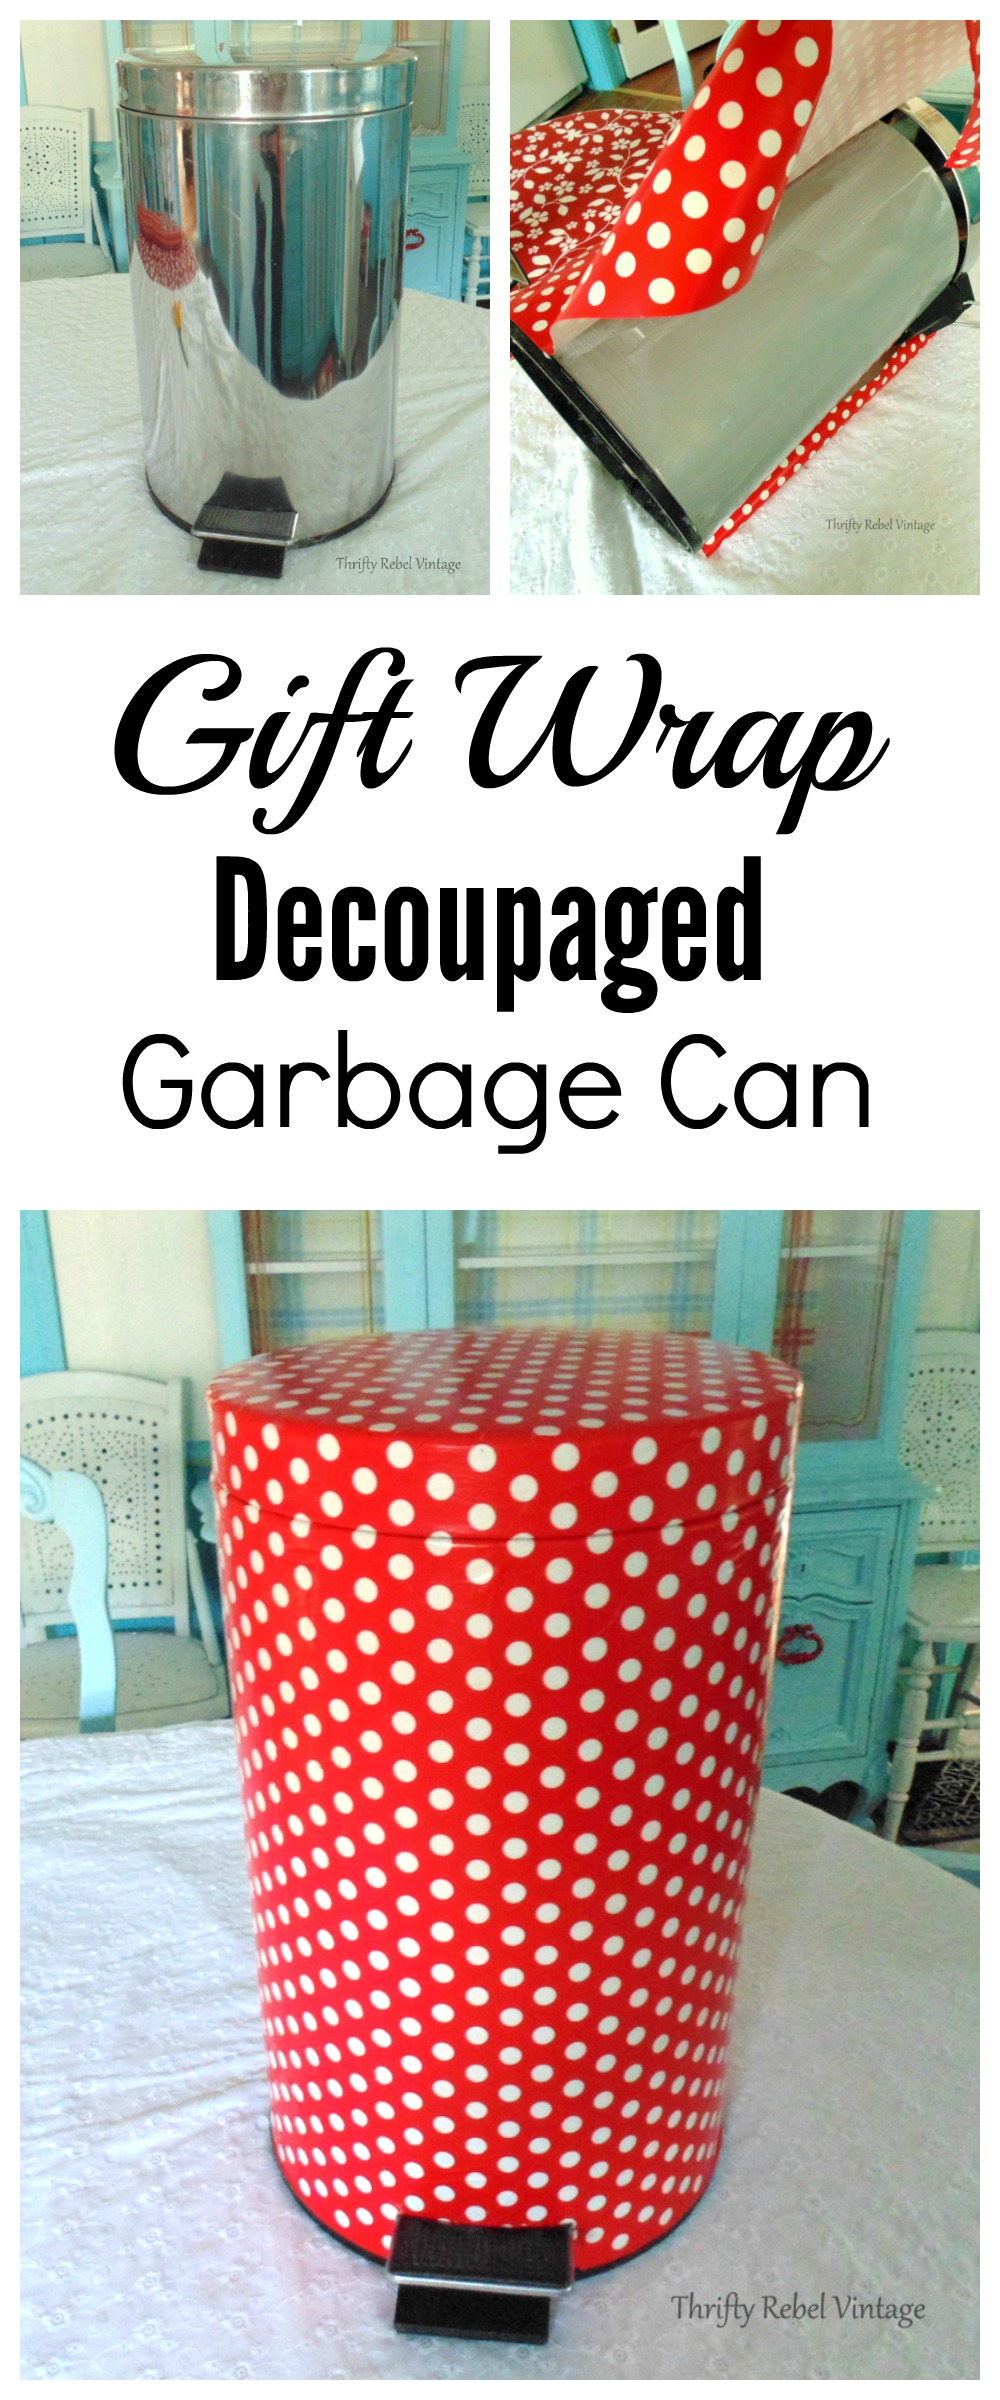 How to decoupage a garbage can with wrapping paper